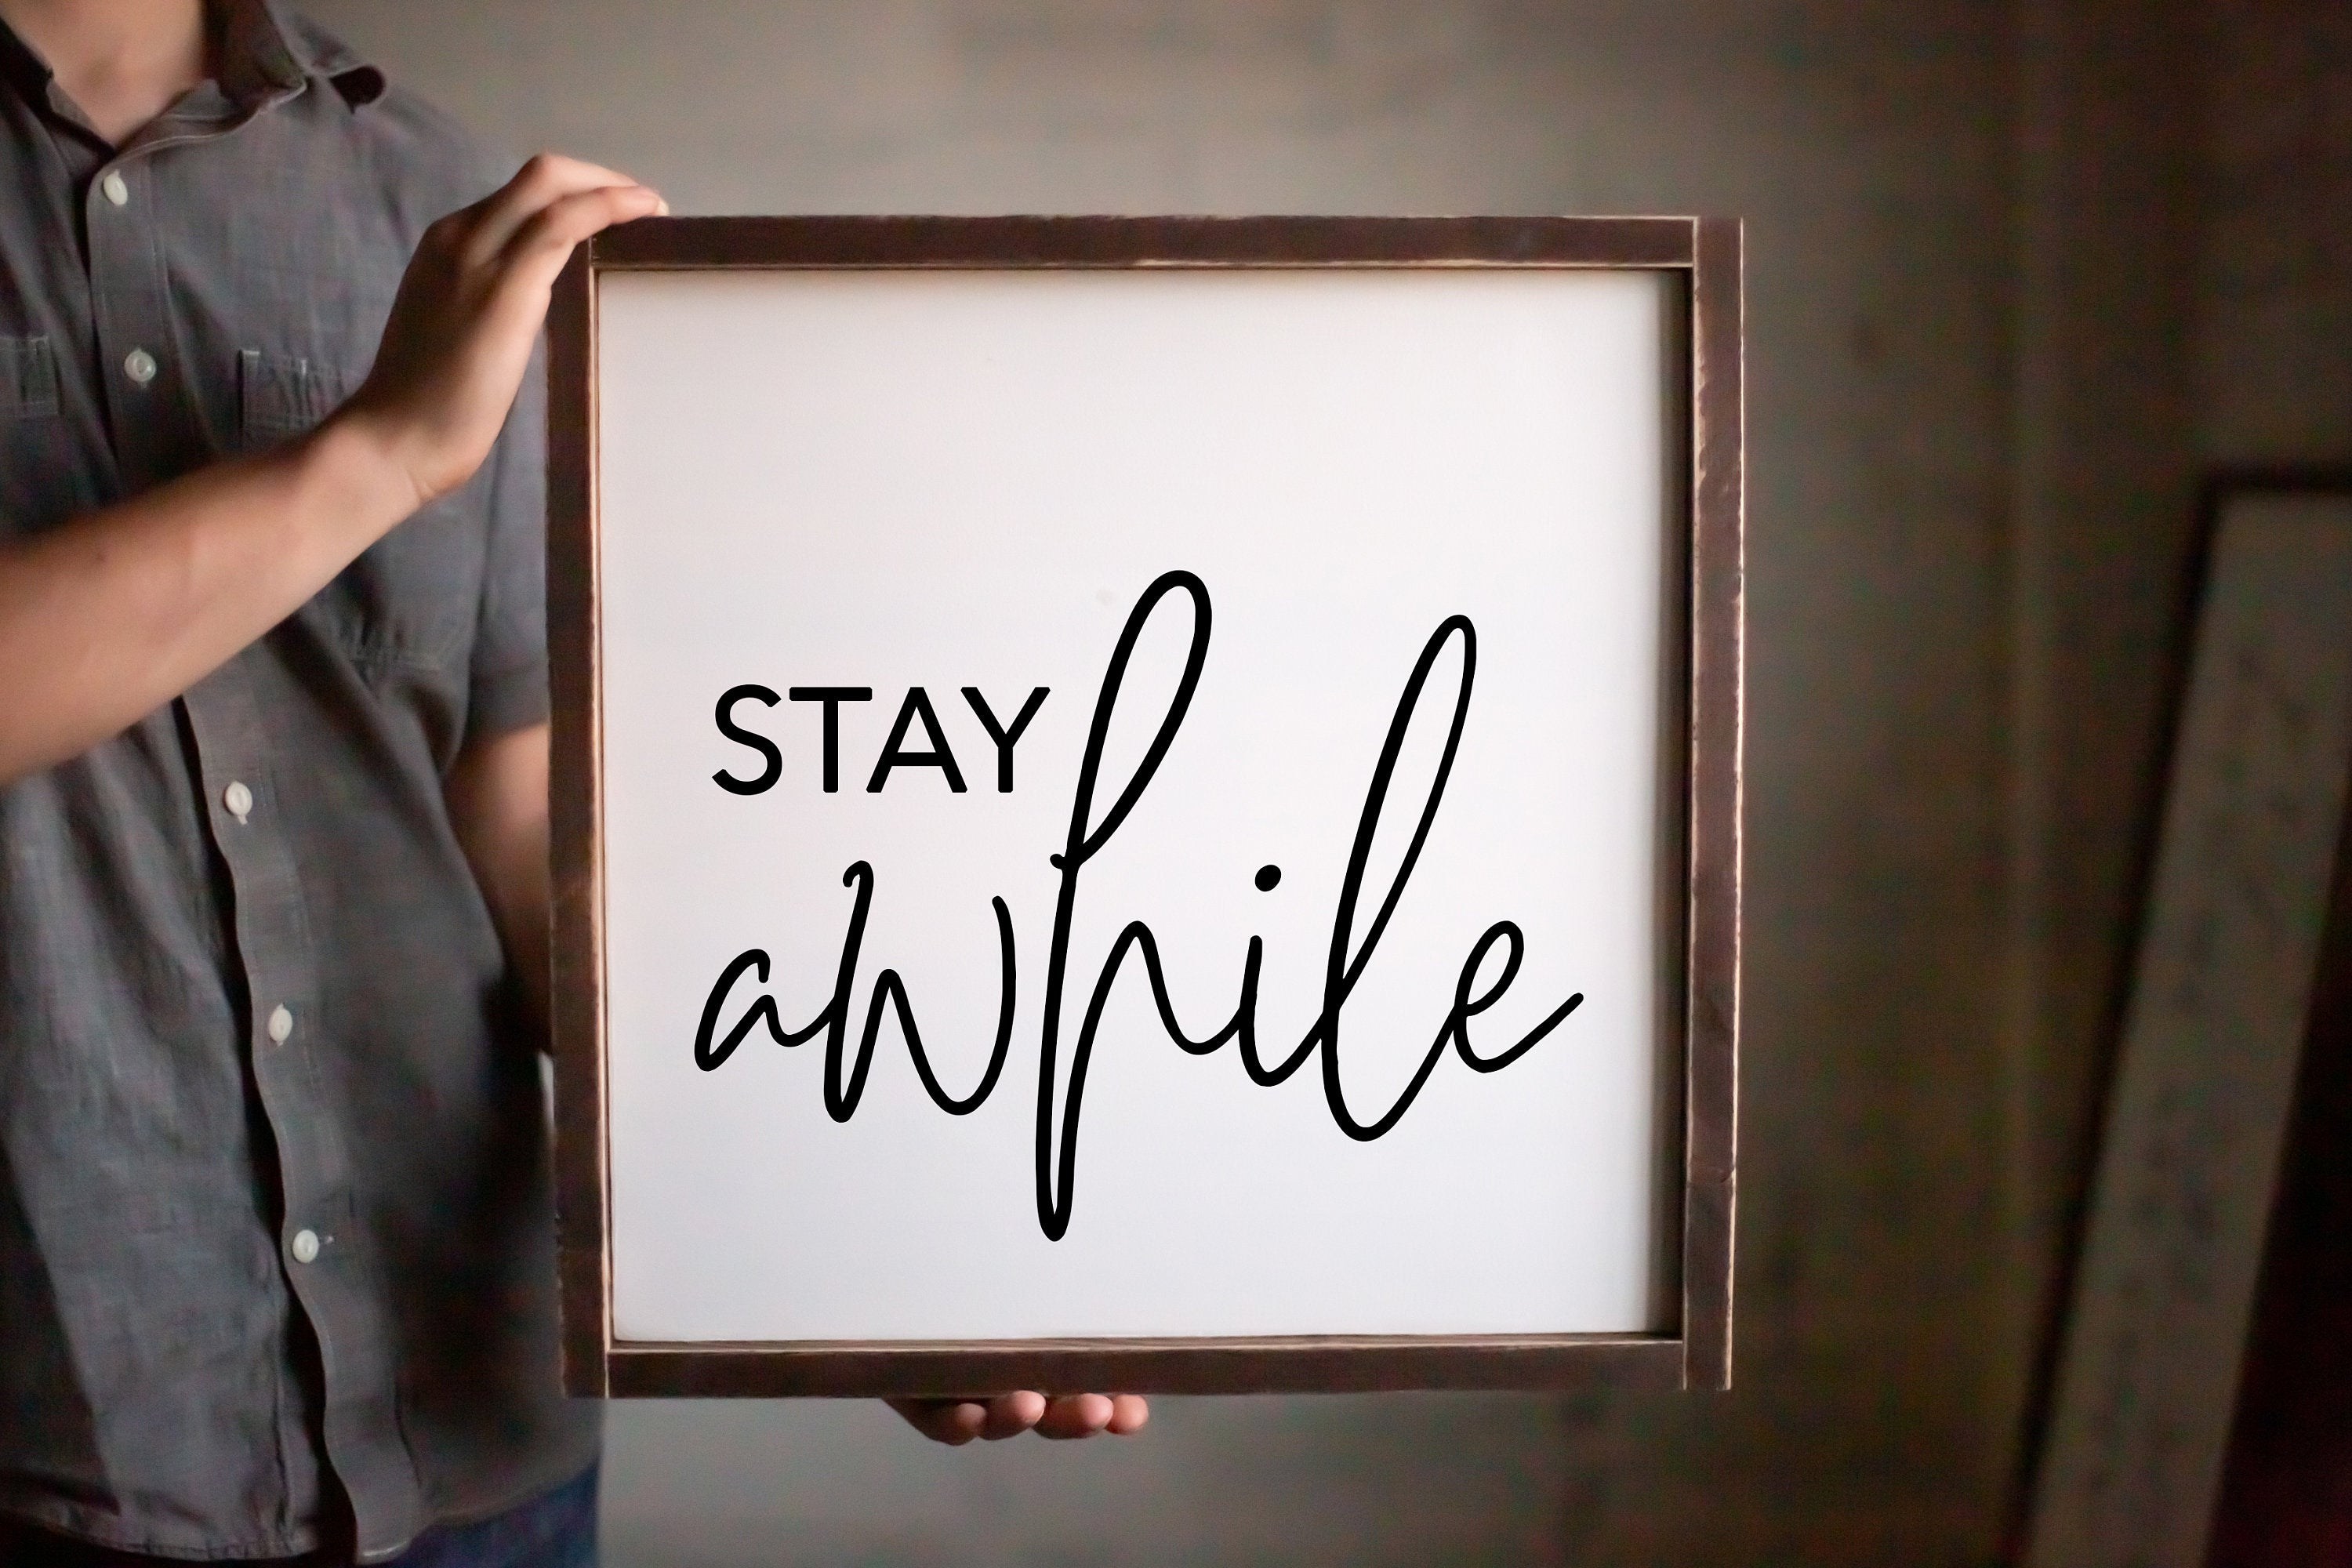 Stay Awhile Guest Room Framed Wood Sign  Housewarming Gift Sign  Modern Home Decor  Thanksgiving Decor  Fall Decor  Be Our Guest Sign